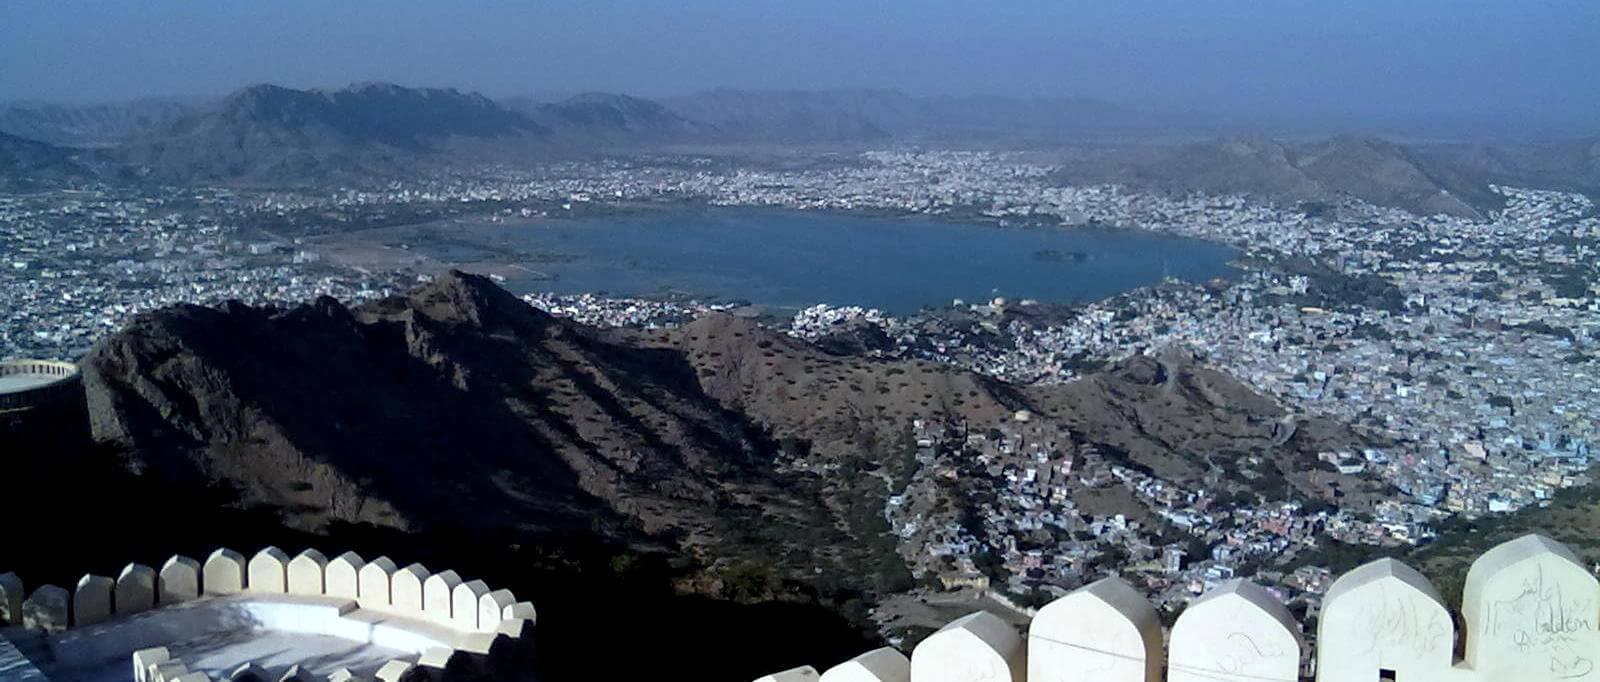 Ajmer: History, Geography, Places to See